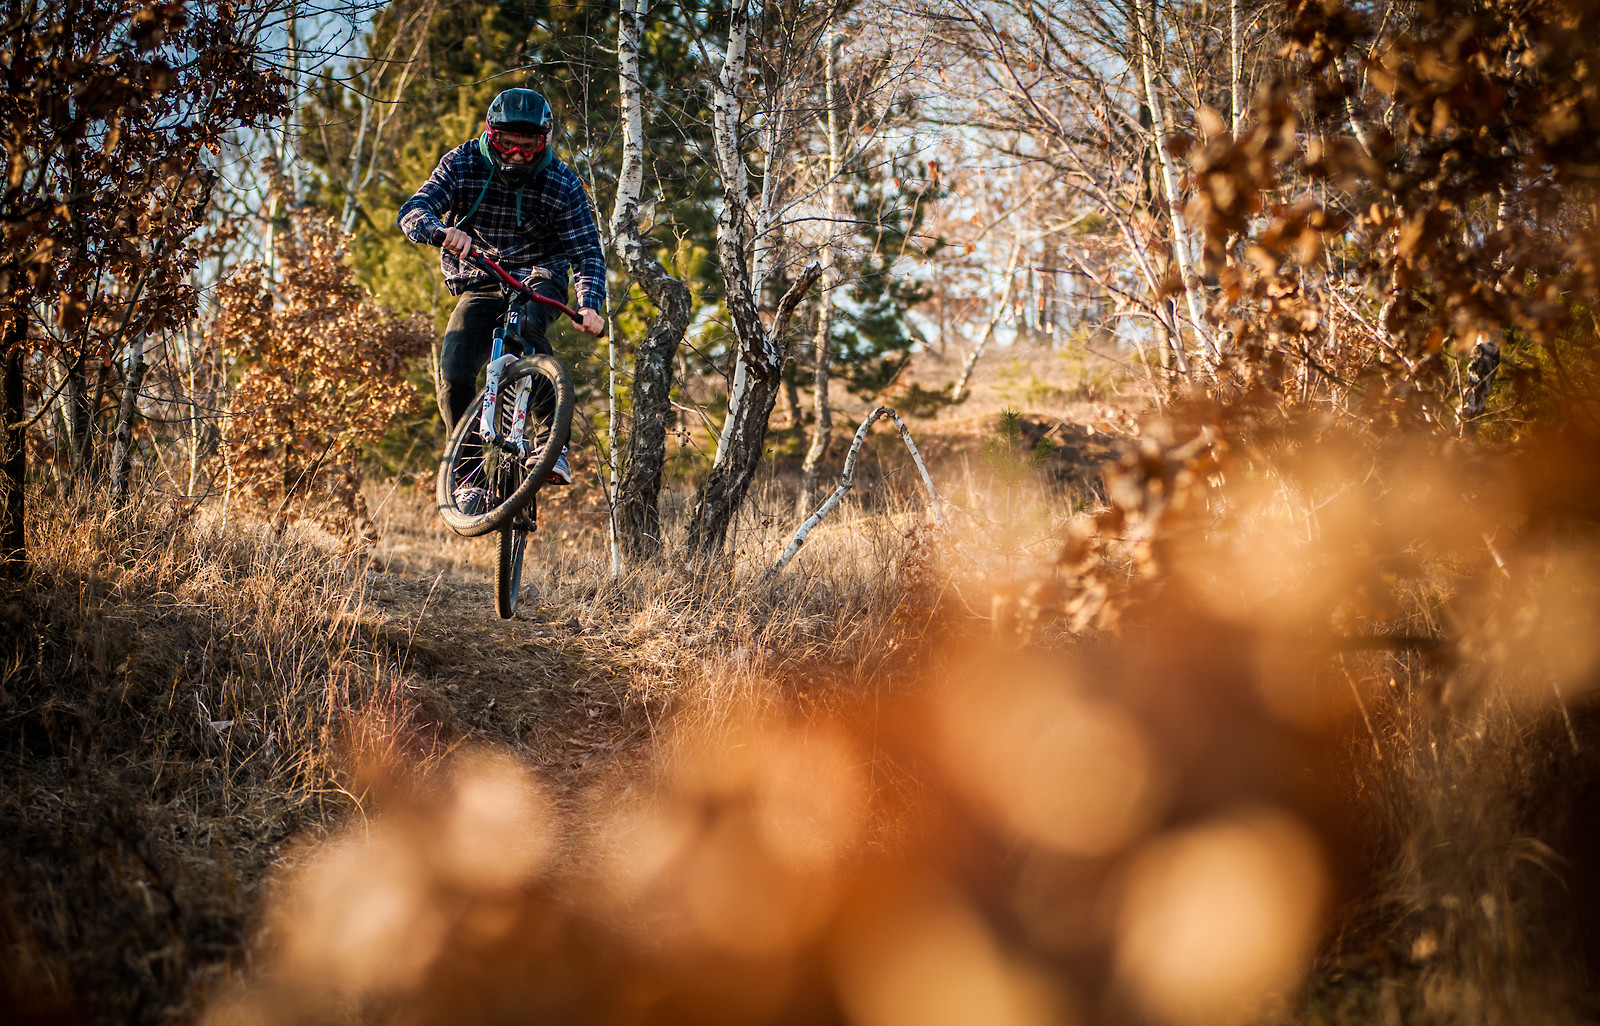 brezacik  - purehell - Mountain Biking Pictures - Vital MTB